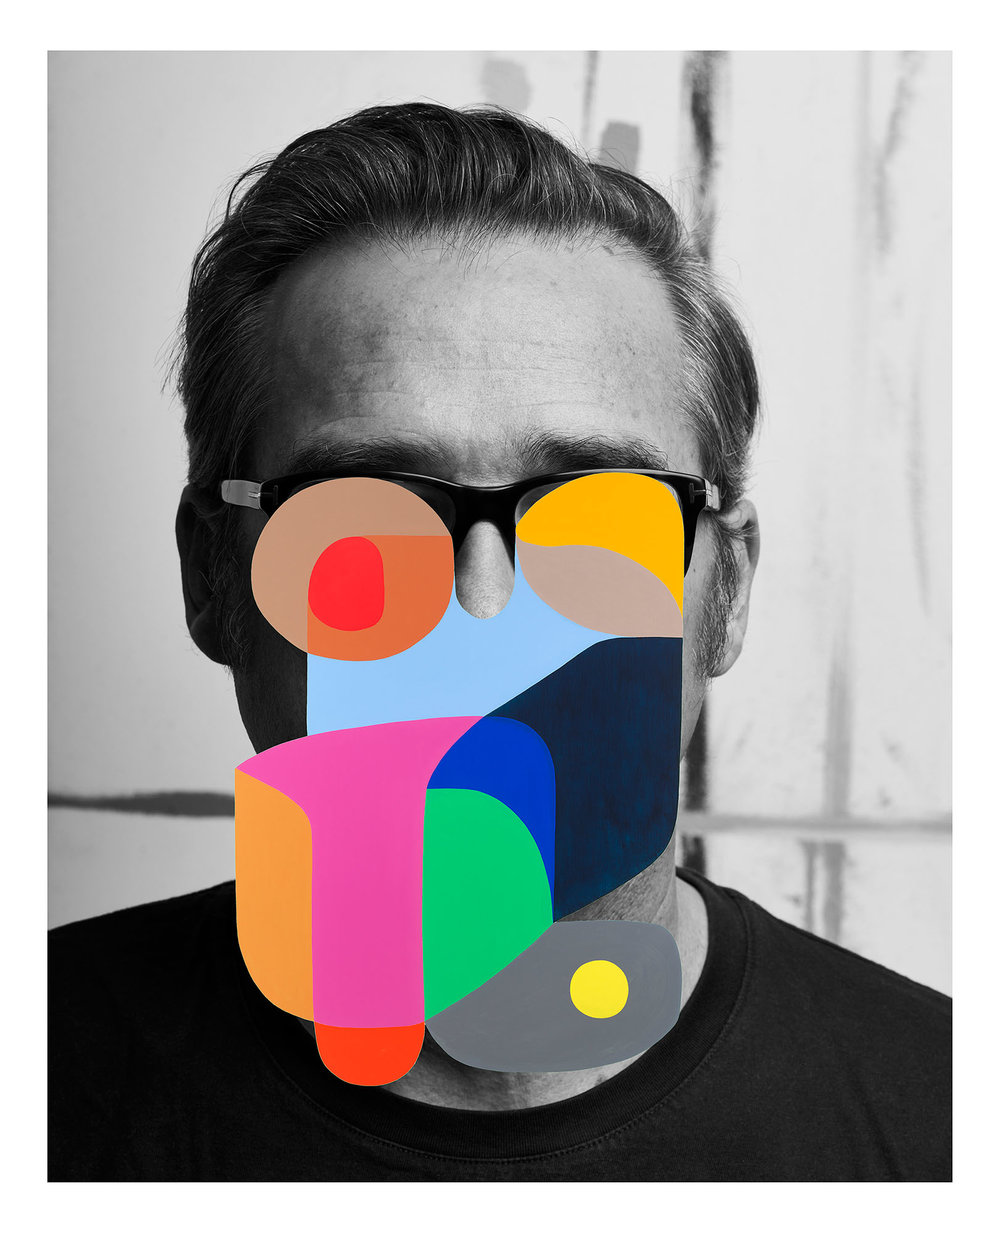 Stephen Ormandy